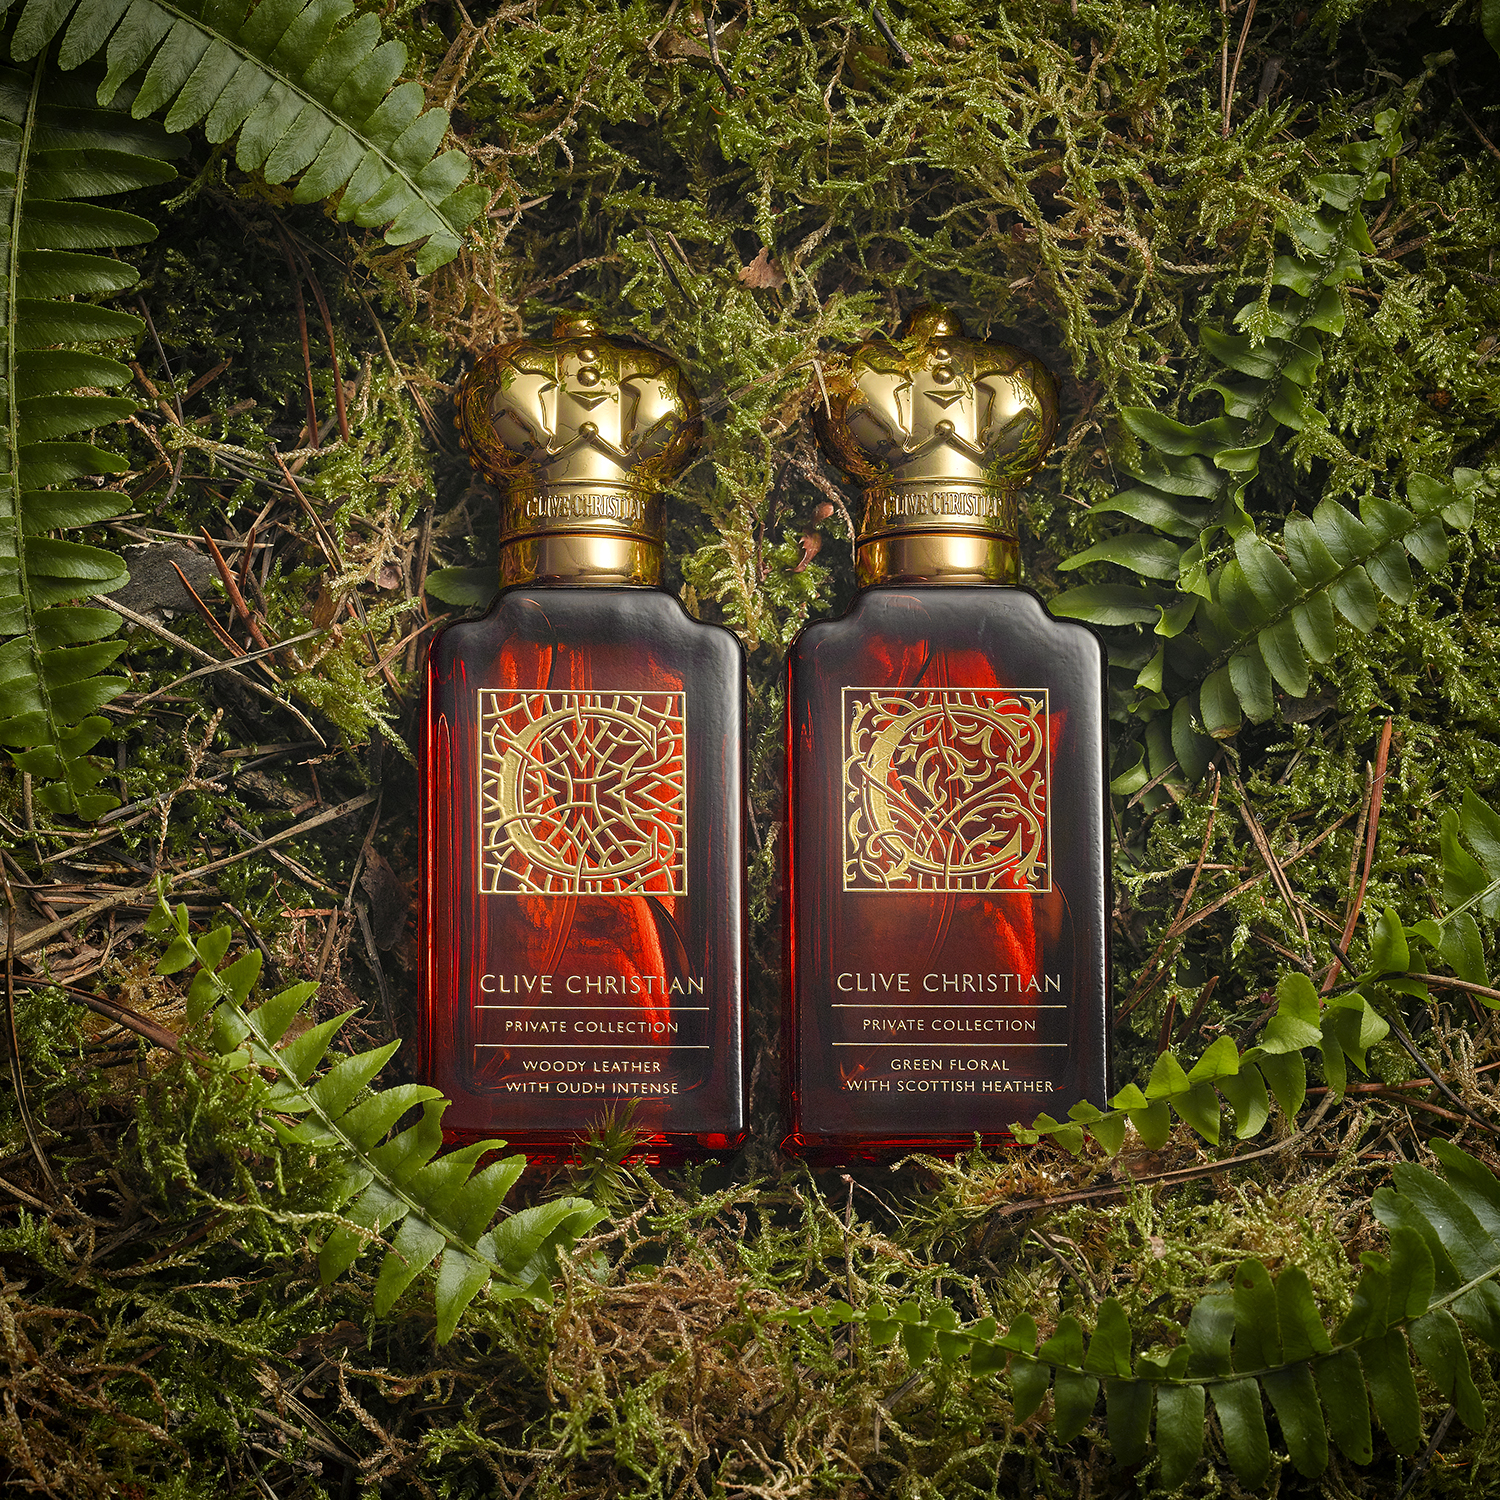 A pair of perfume bottles on moss and grass create this cosmetic still life photograph from london product photographer chris howlett